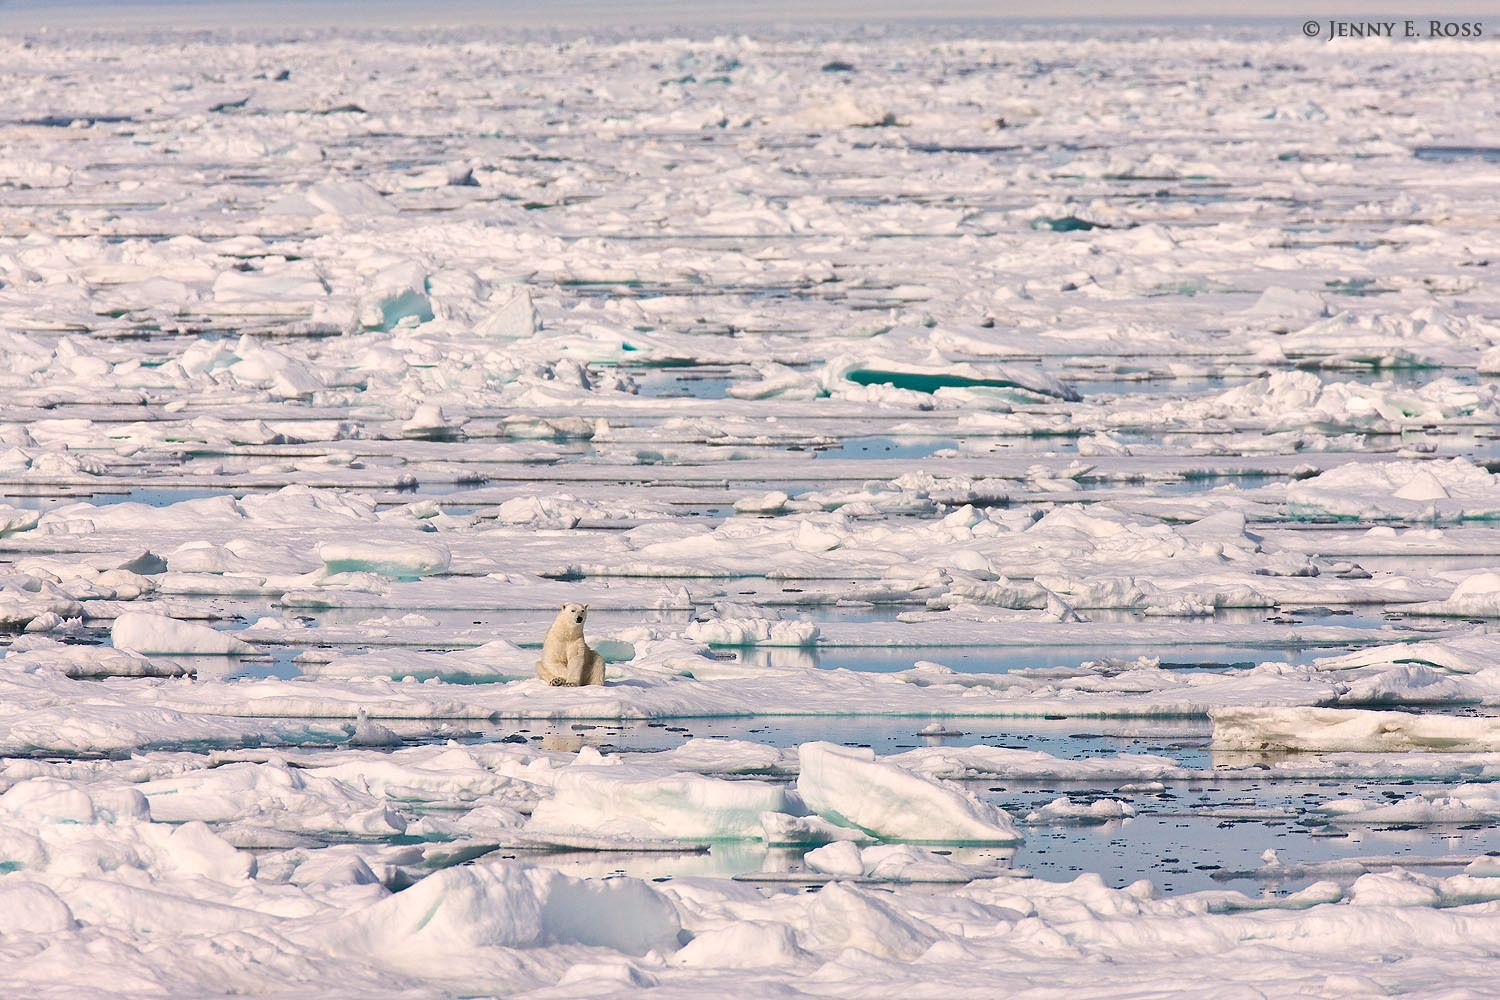 Adult polar bear (Ursus maritimus) resting on sea ice